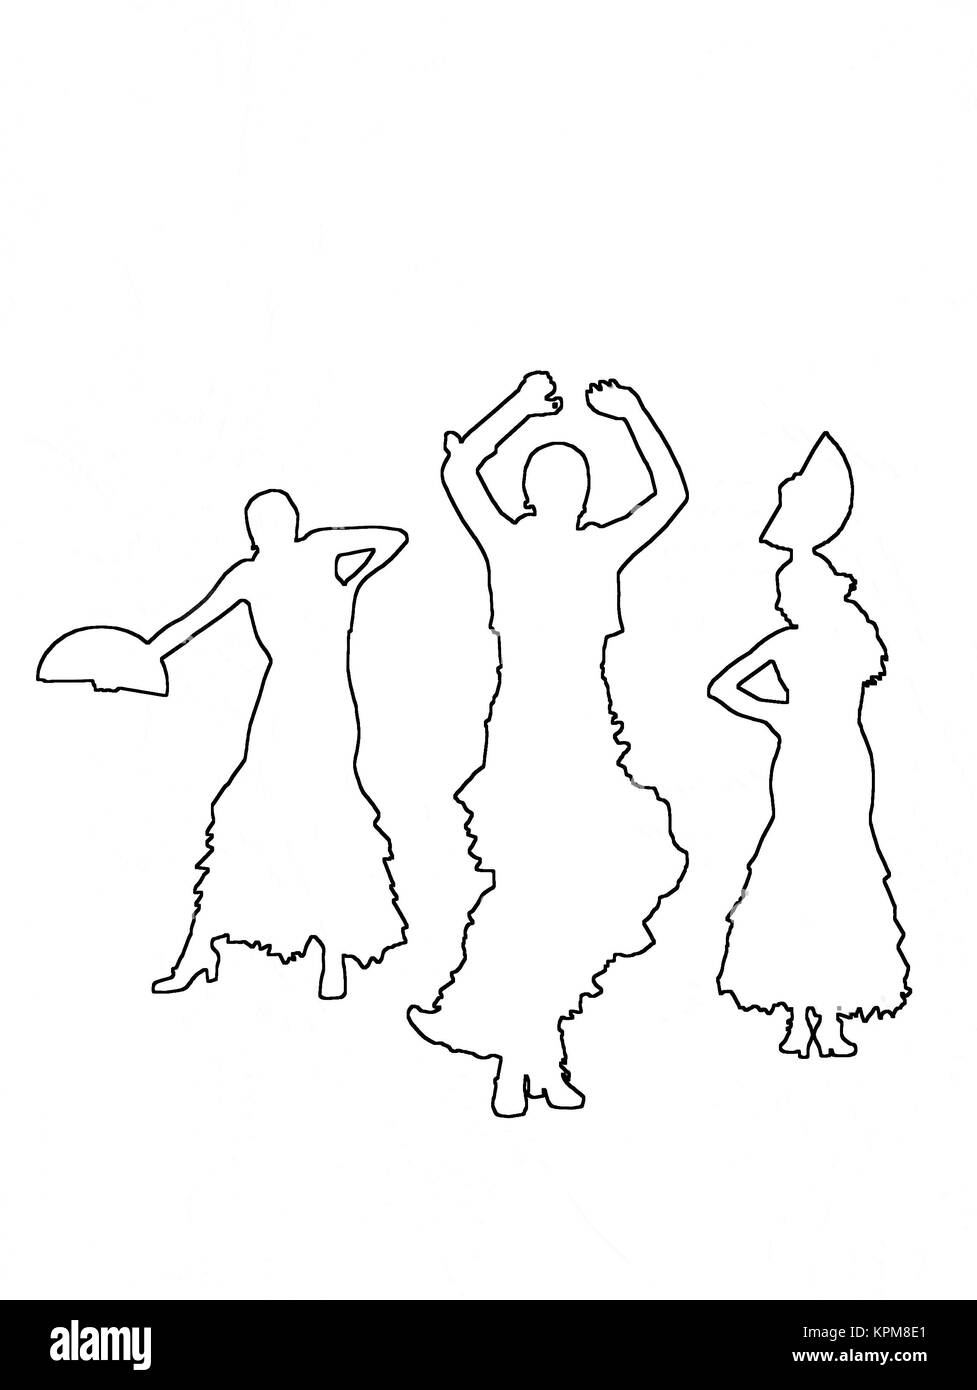 Silhouettes of three female flamenco dancers on rosy pink abstract background illustration. - Stock Image